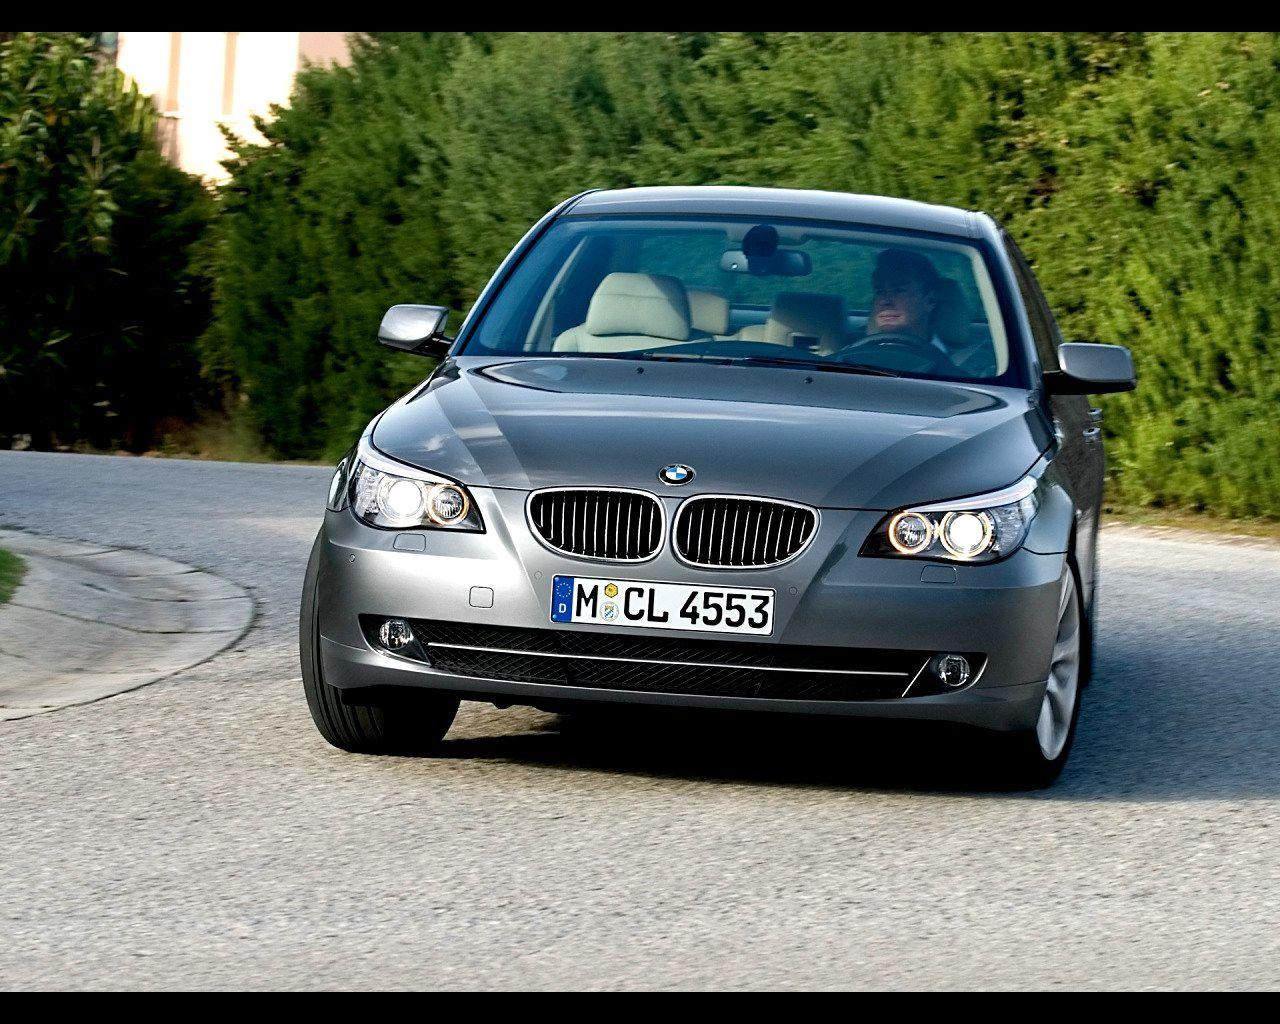 2008 BMW 5 Series Wallpaper 11 - 1280x1024